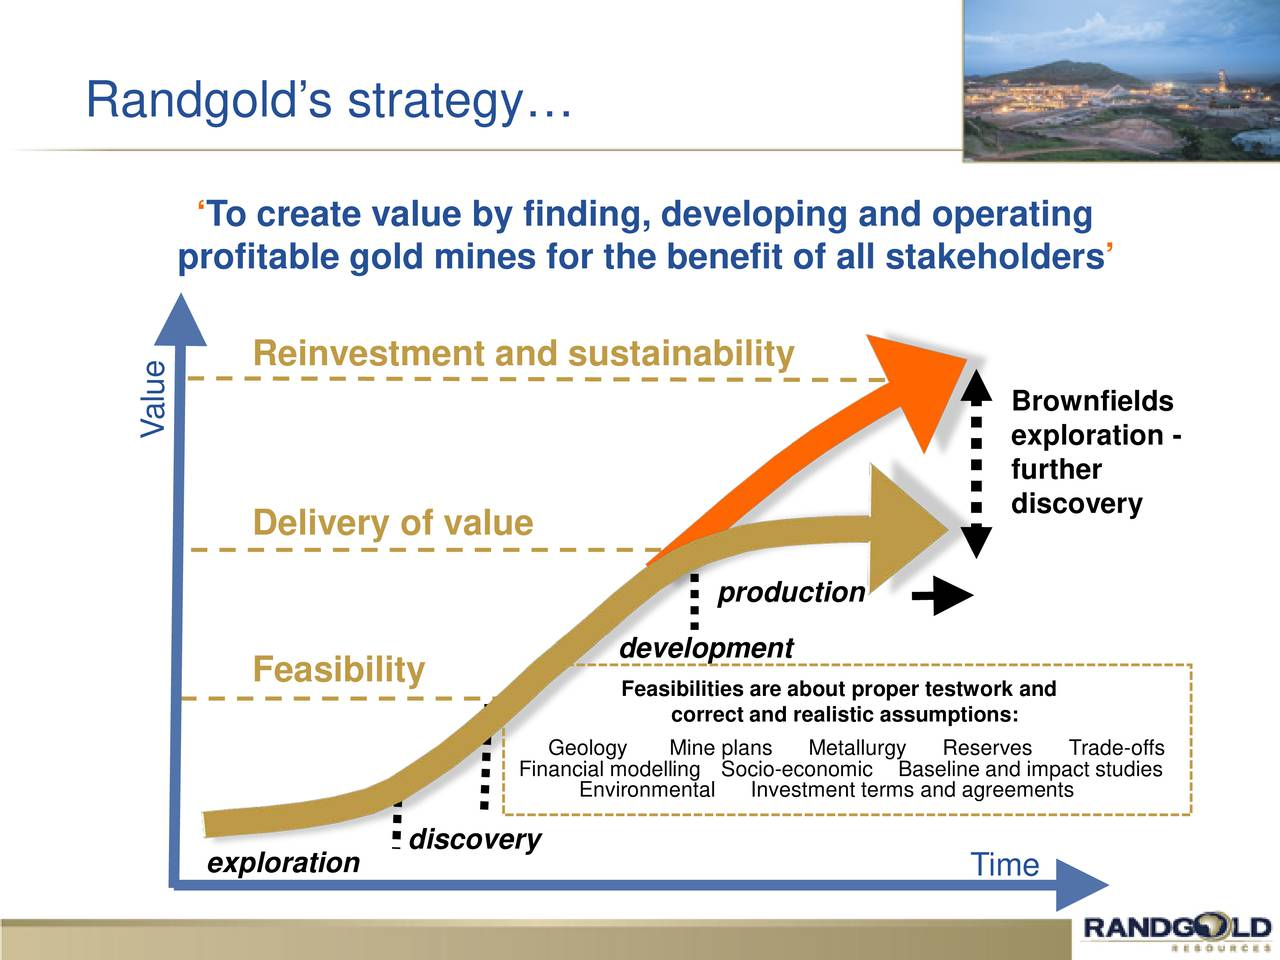 To create value by finding, developing and operating profitable gold mines for the benefit of all stakeholders Reinvestment and sustainability Brownfields Value exploration - further Delivery of value discovery production development Feasibility Feasibilities are about proper testwork and correct and realistic assumptions: Financial modelling Socio-ecoBaseline and impact studies EnvironmentalInvestment terms and agreements discovery exploration Time